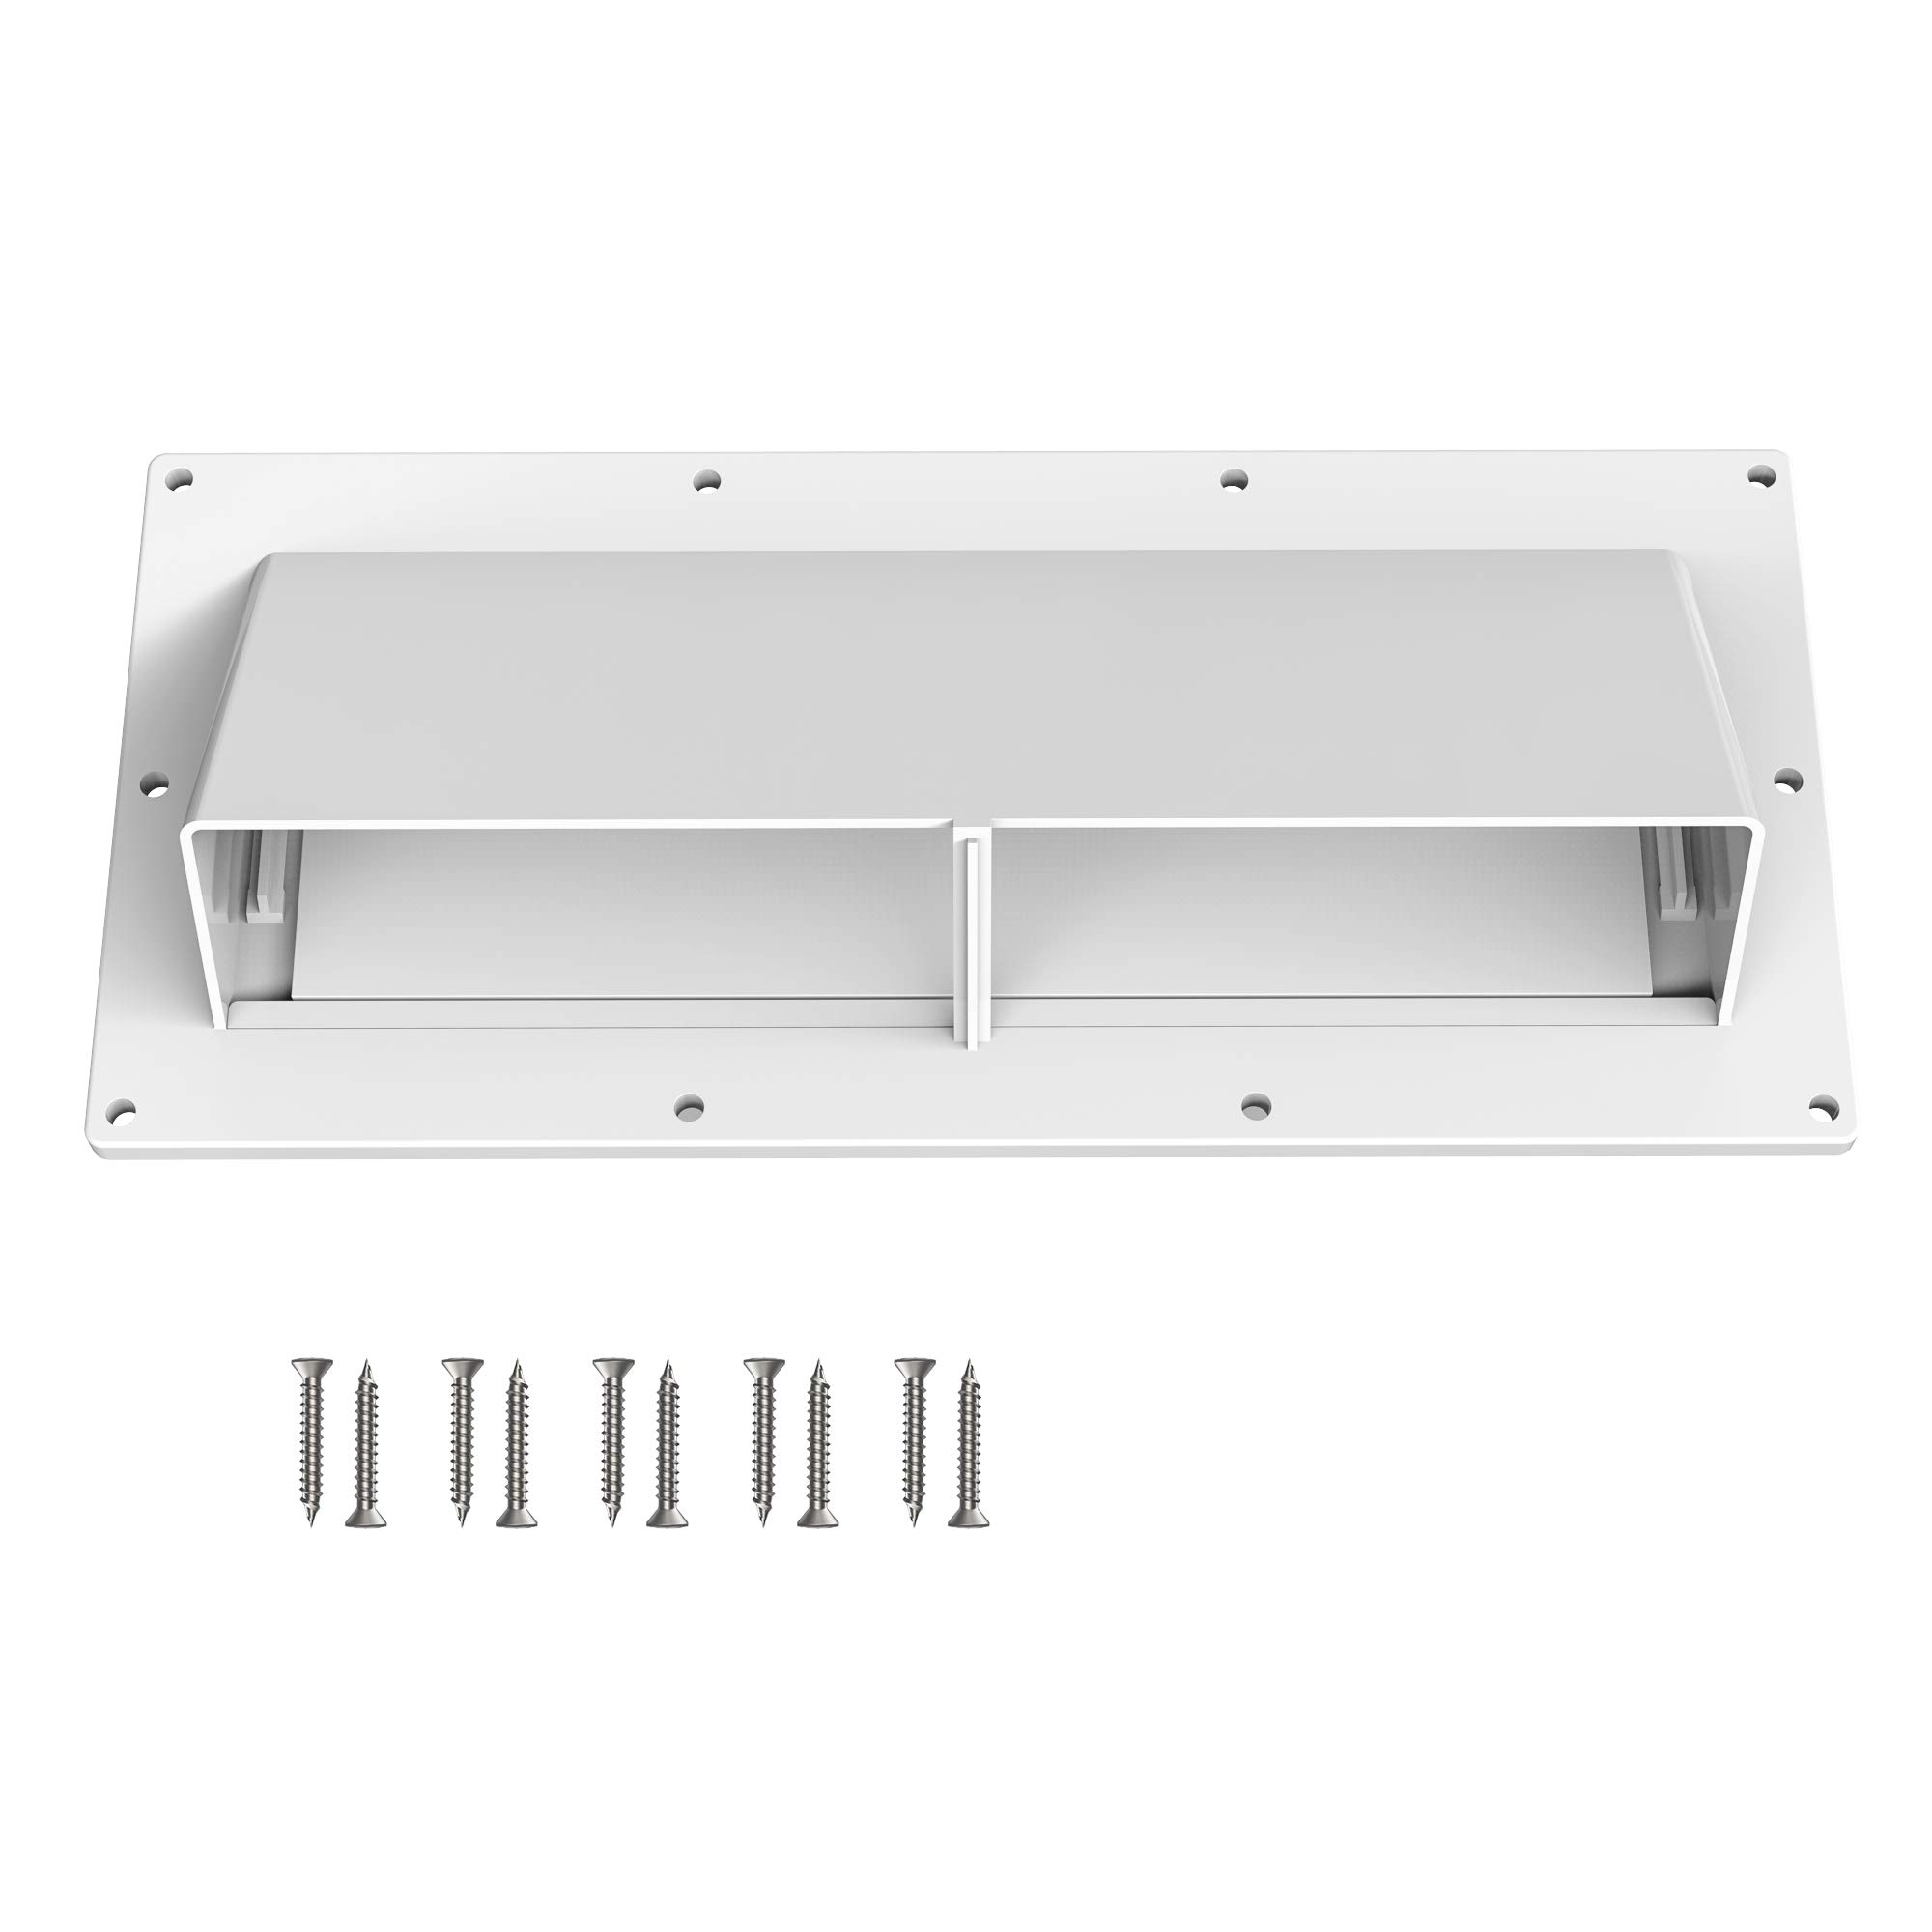 Kohree RV Range Hood Vent Exhaust Vent Cover, High Impact Resistance RV Range Hood Cover Stove Vent Cover with Lockable Clips for RV Mobile Home, Screws Included by Kohree